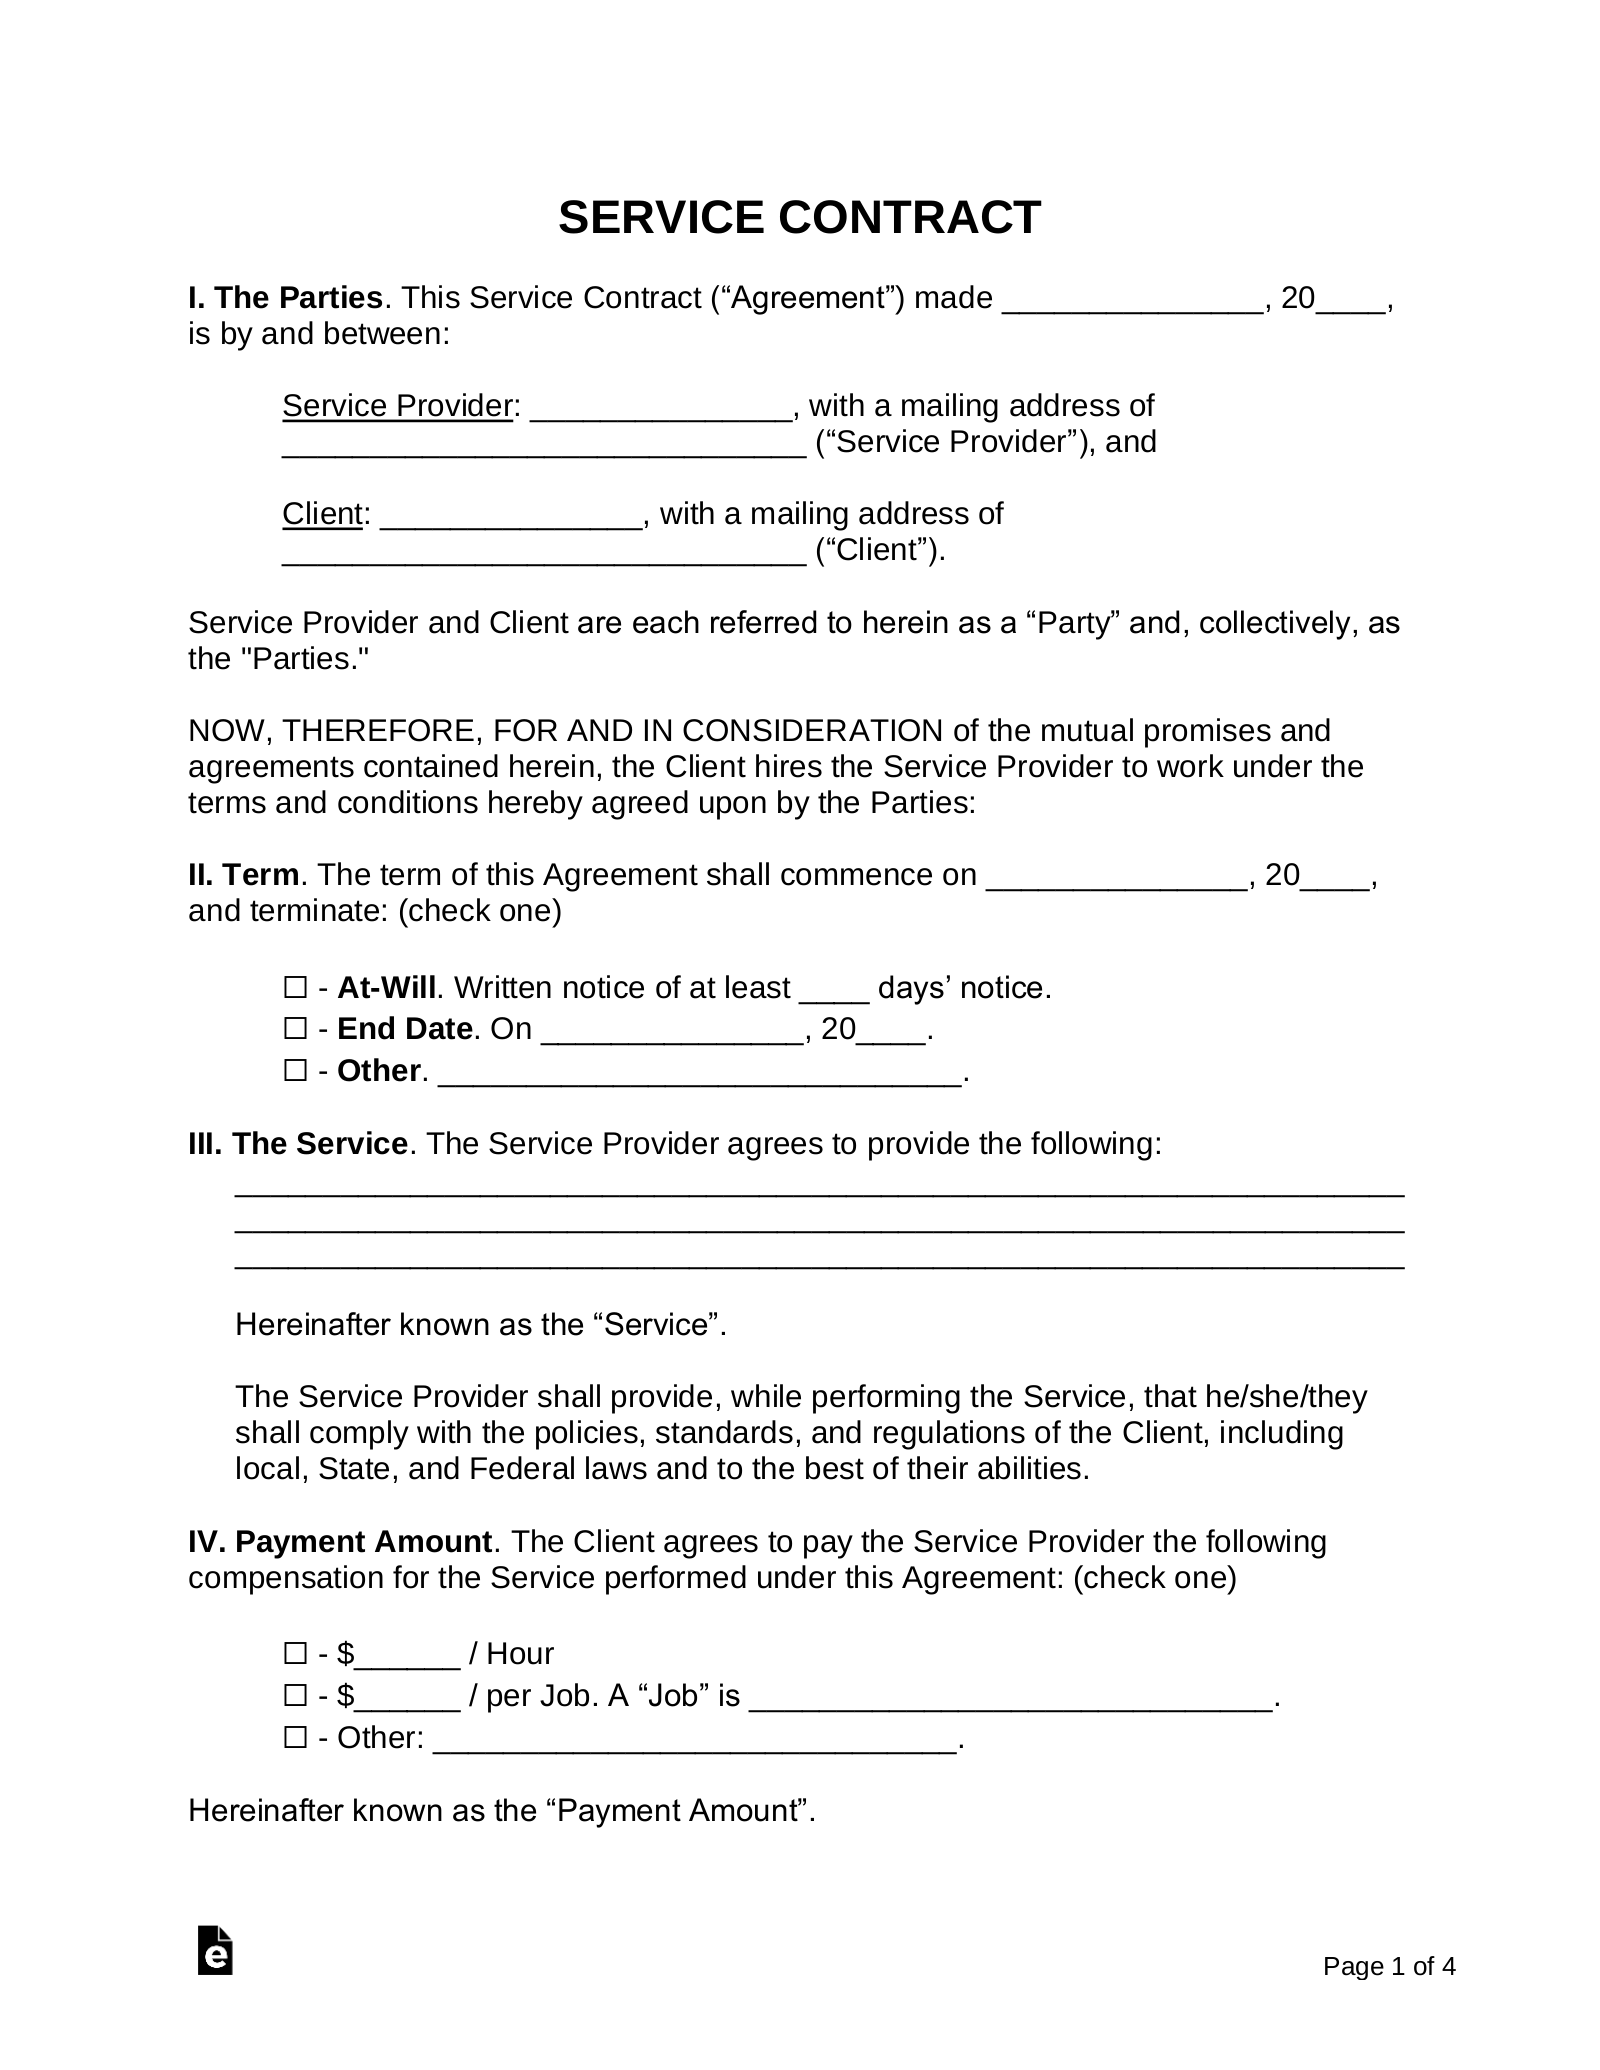 Free Service Contract Templates Pdf Word Eforms